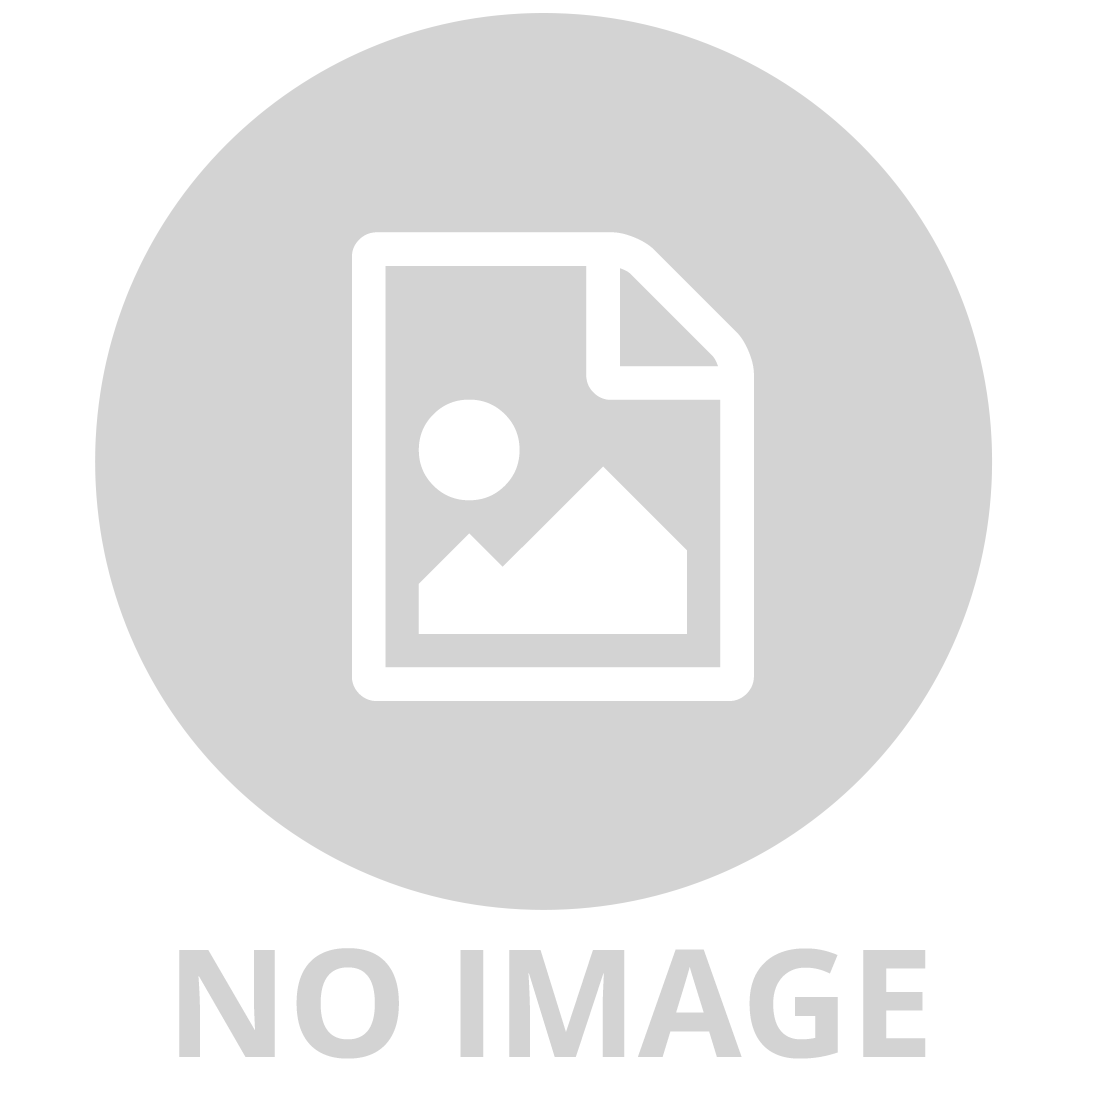 TOY STORY 4 MINI HARDCOVER NOTEBOOK